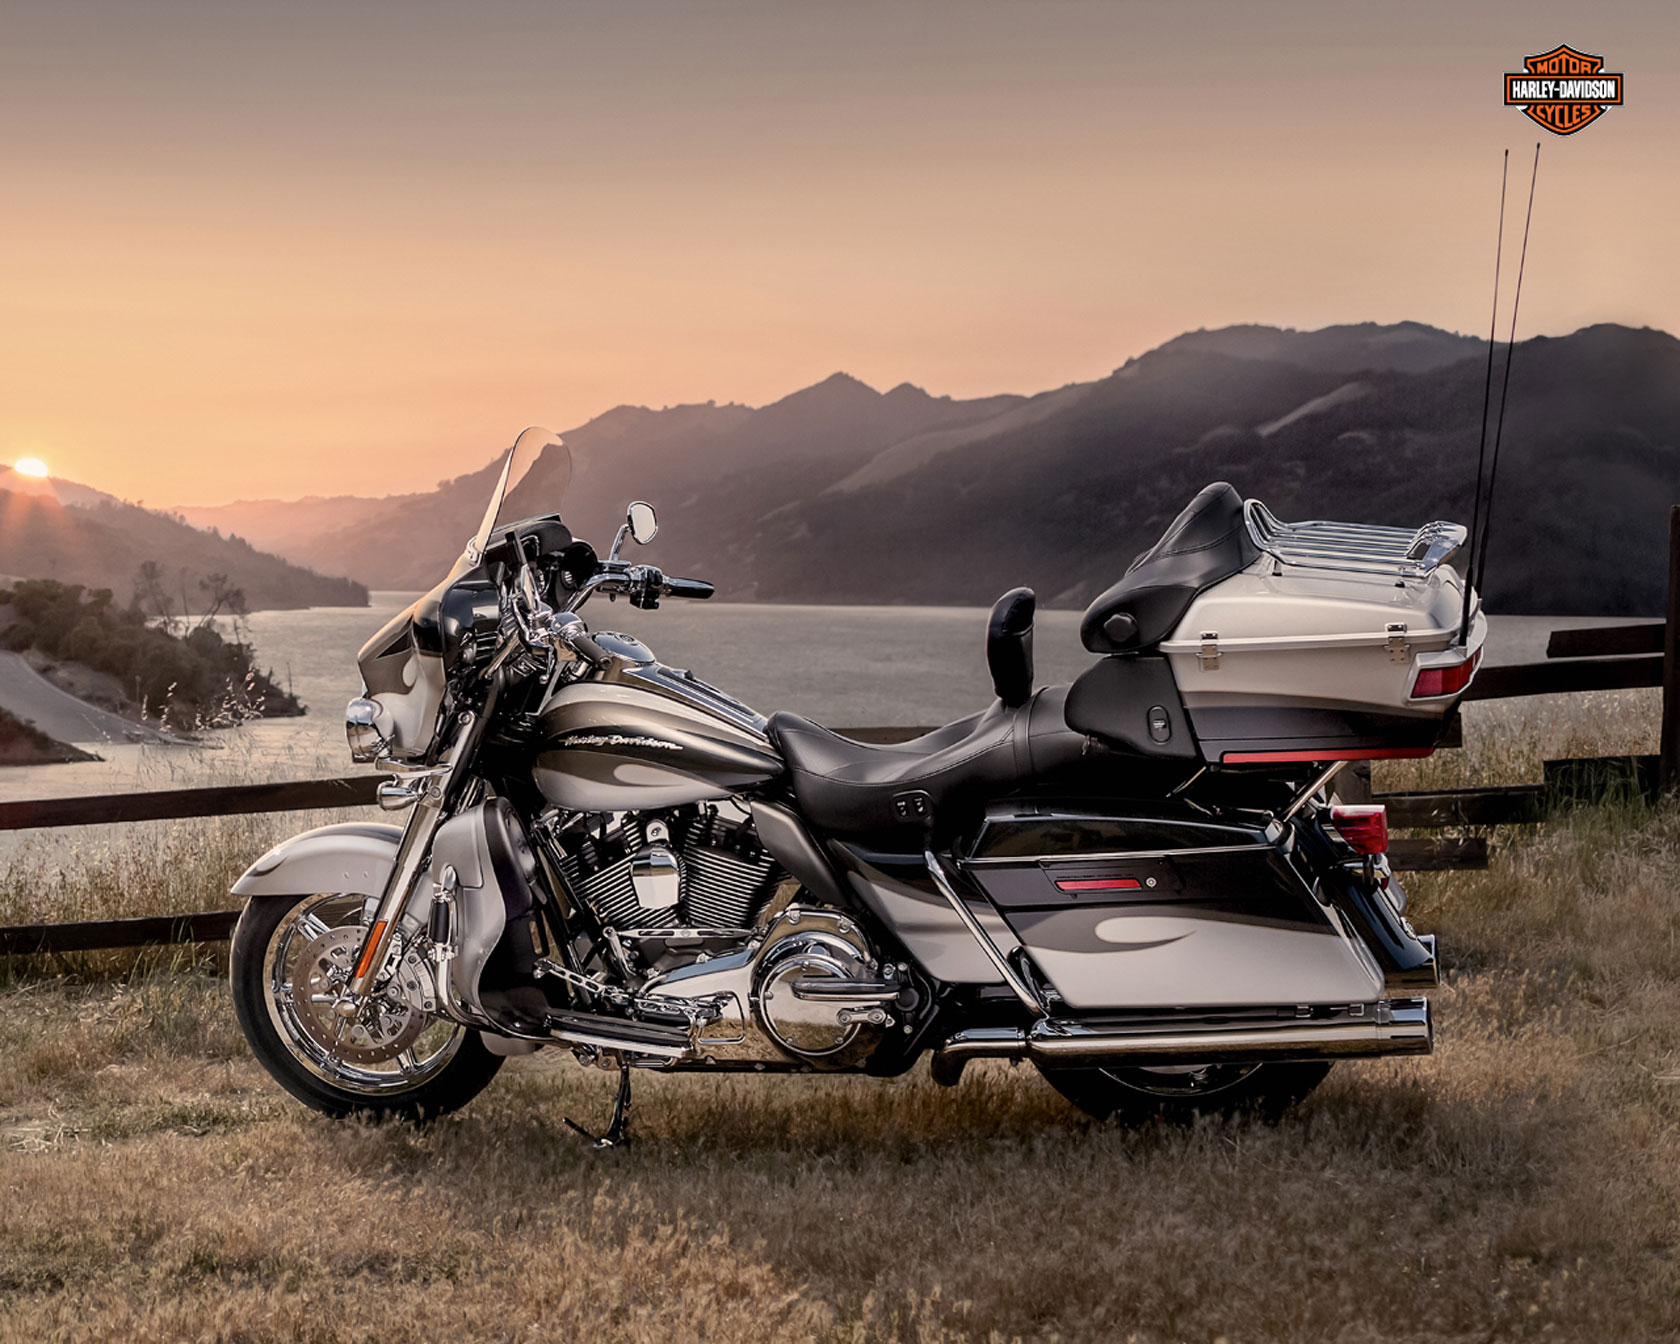 Harley-Davidson FLHTC Electra Glide Classic 2013 pics #19886